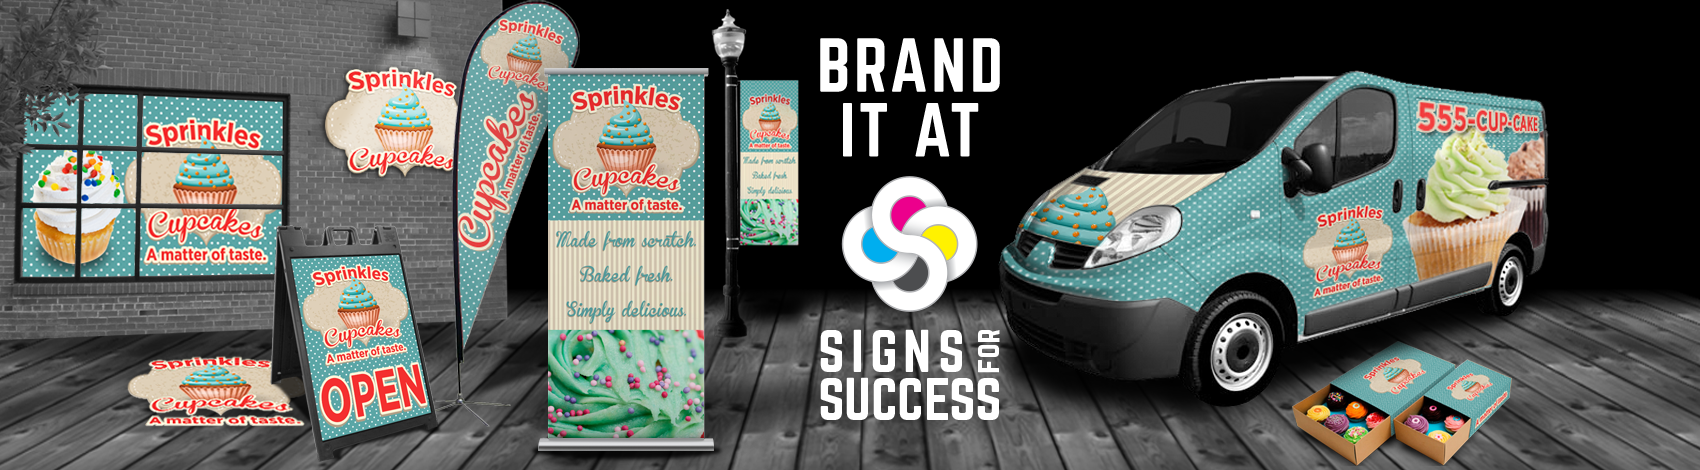 At Signs for Success in Spokane, we can get your branding done with the full sign package, from banners, to promotional products, to vehicle wrap